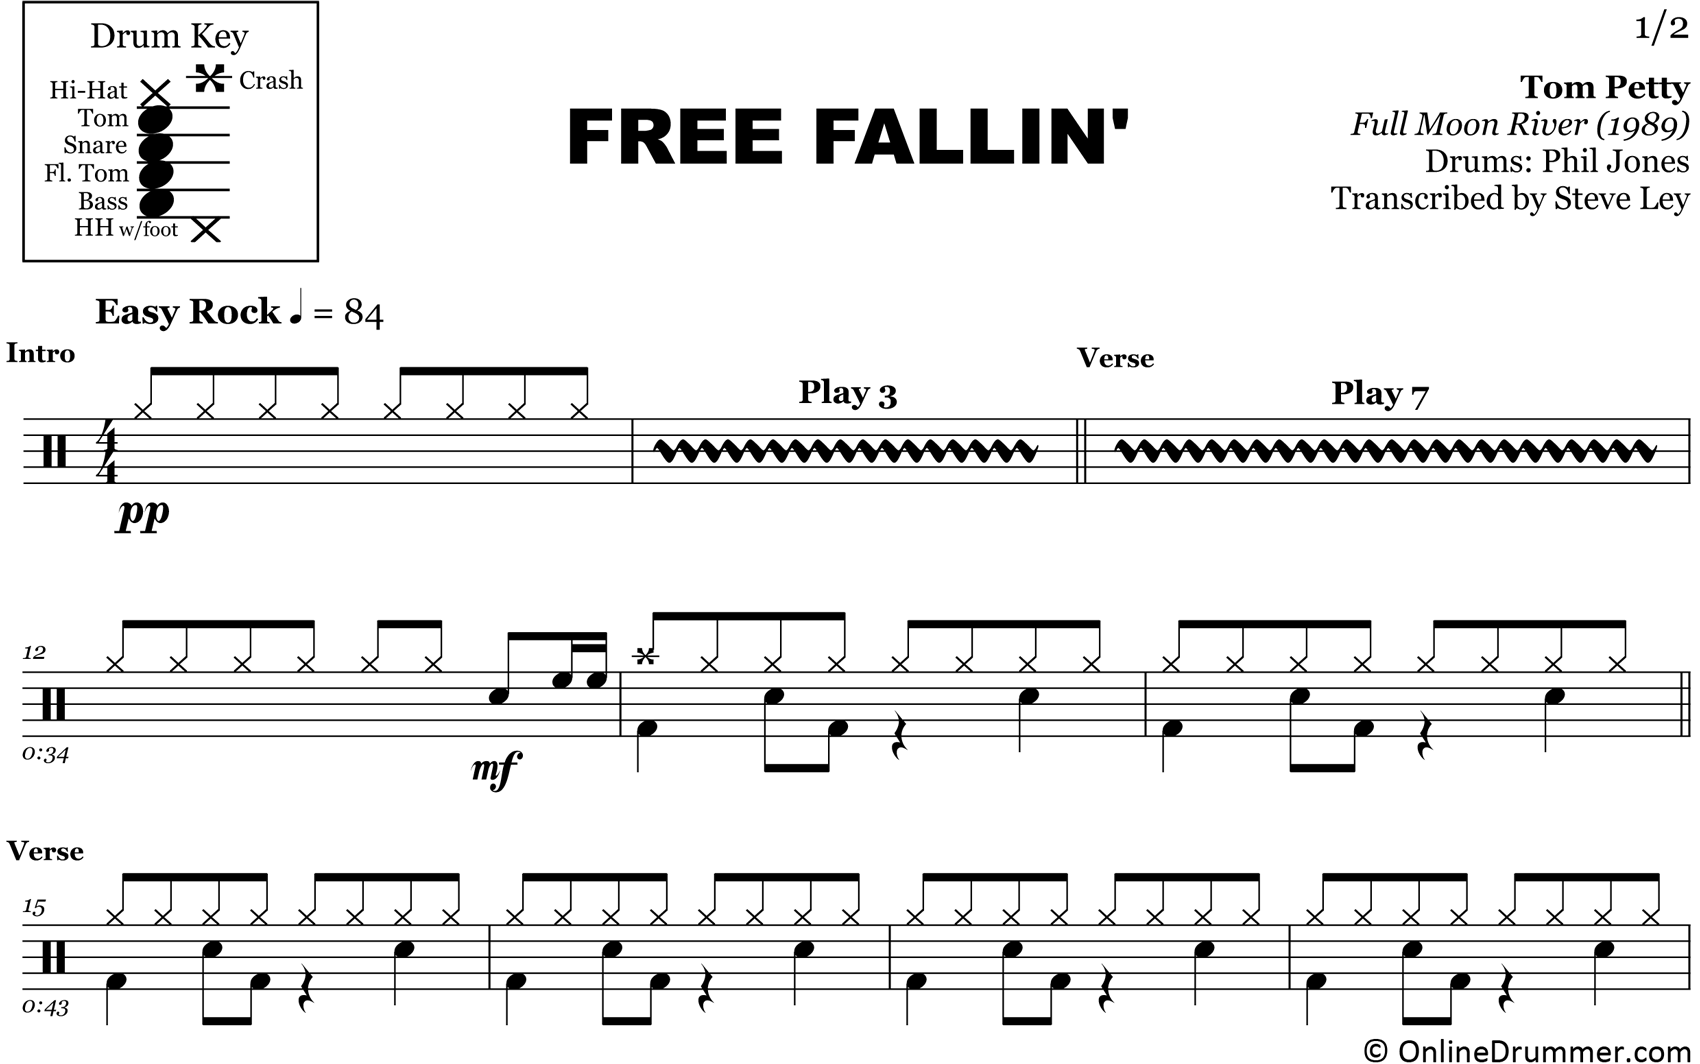 Free Fallin' - Tom Petty - Drum Sheet Music